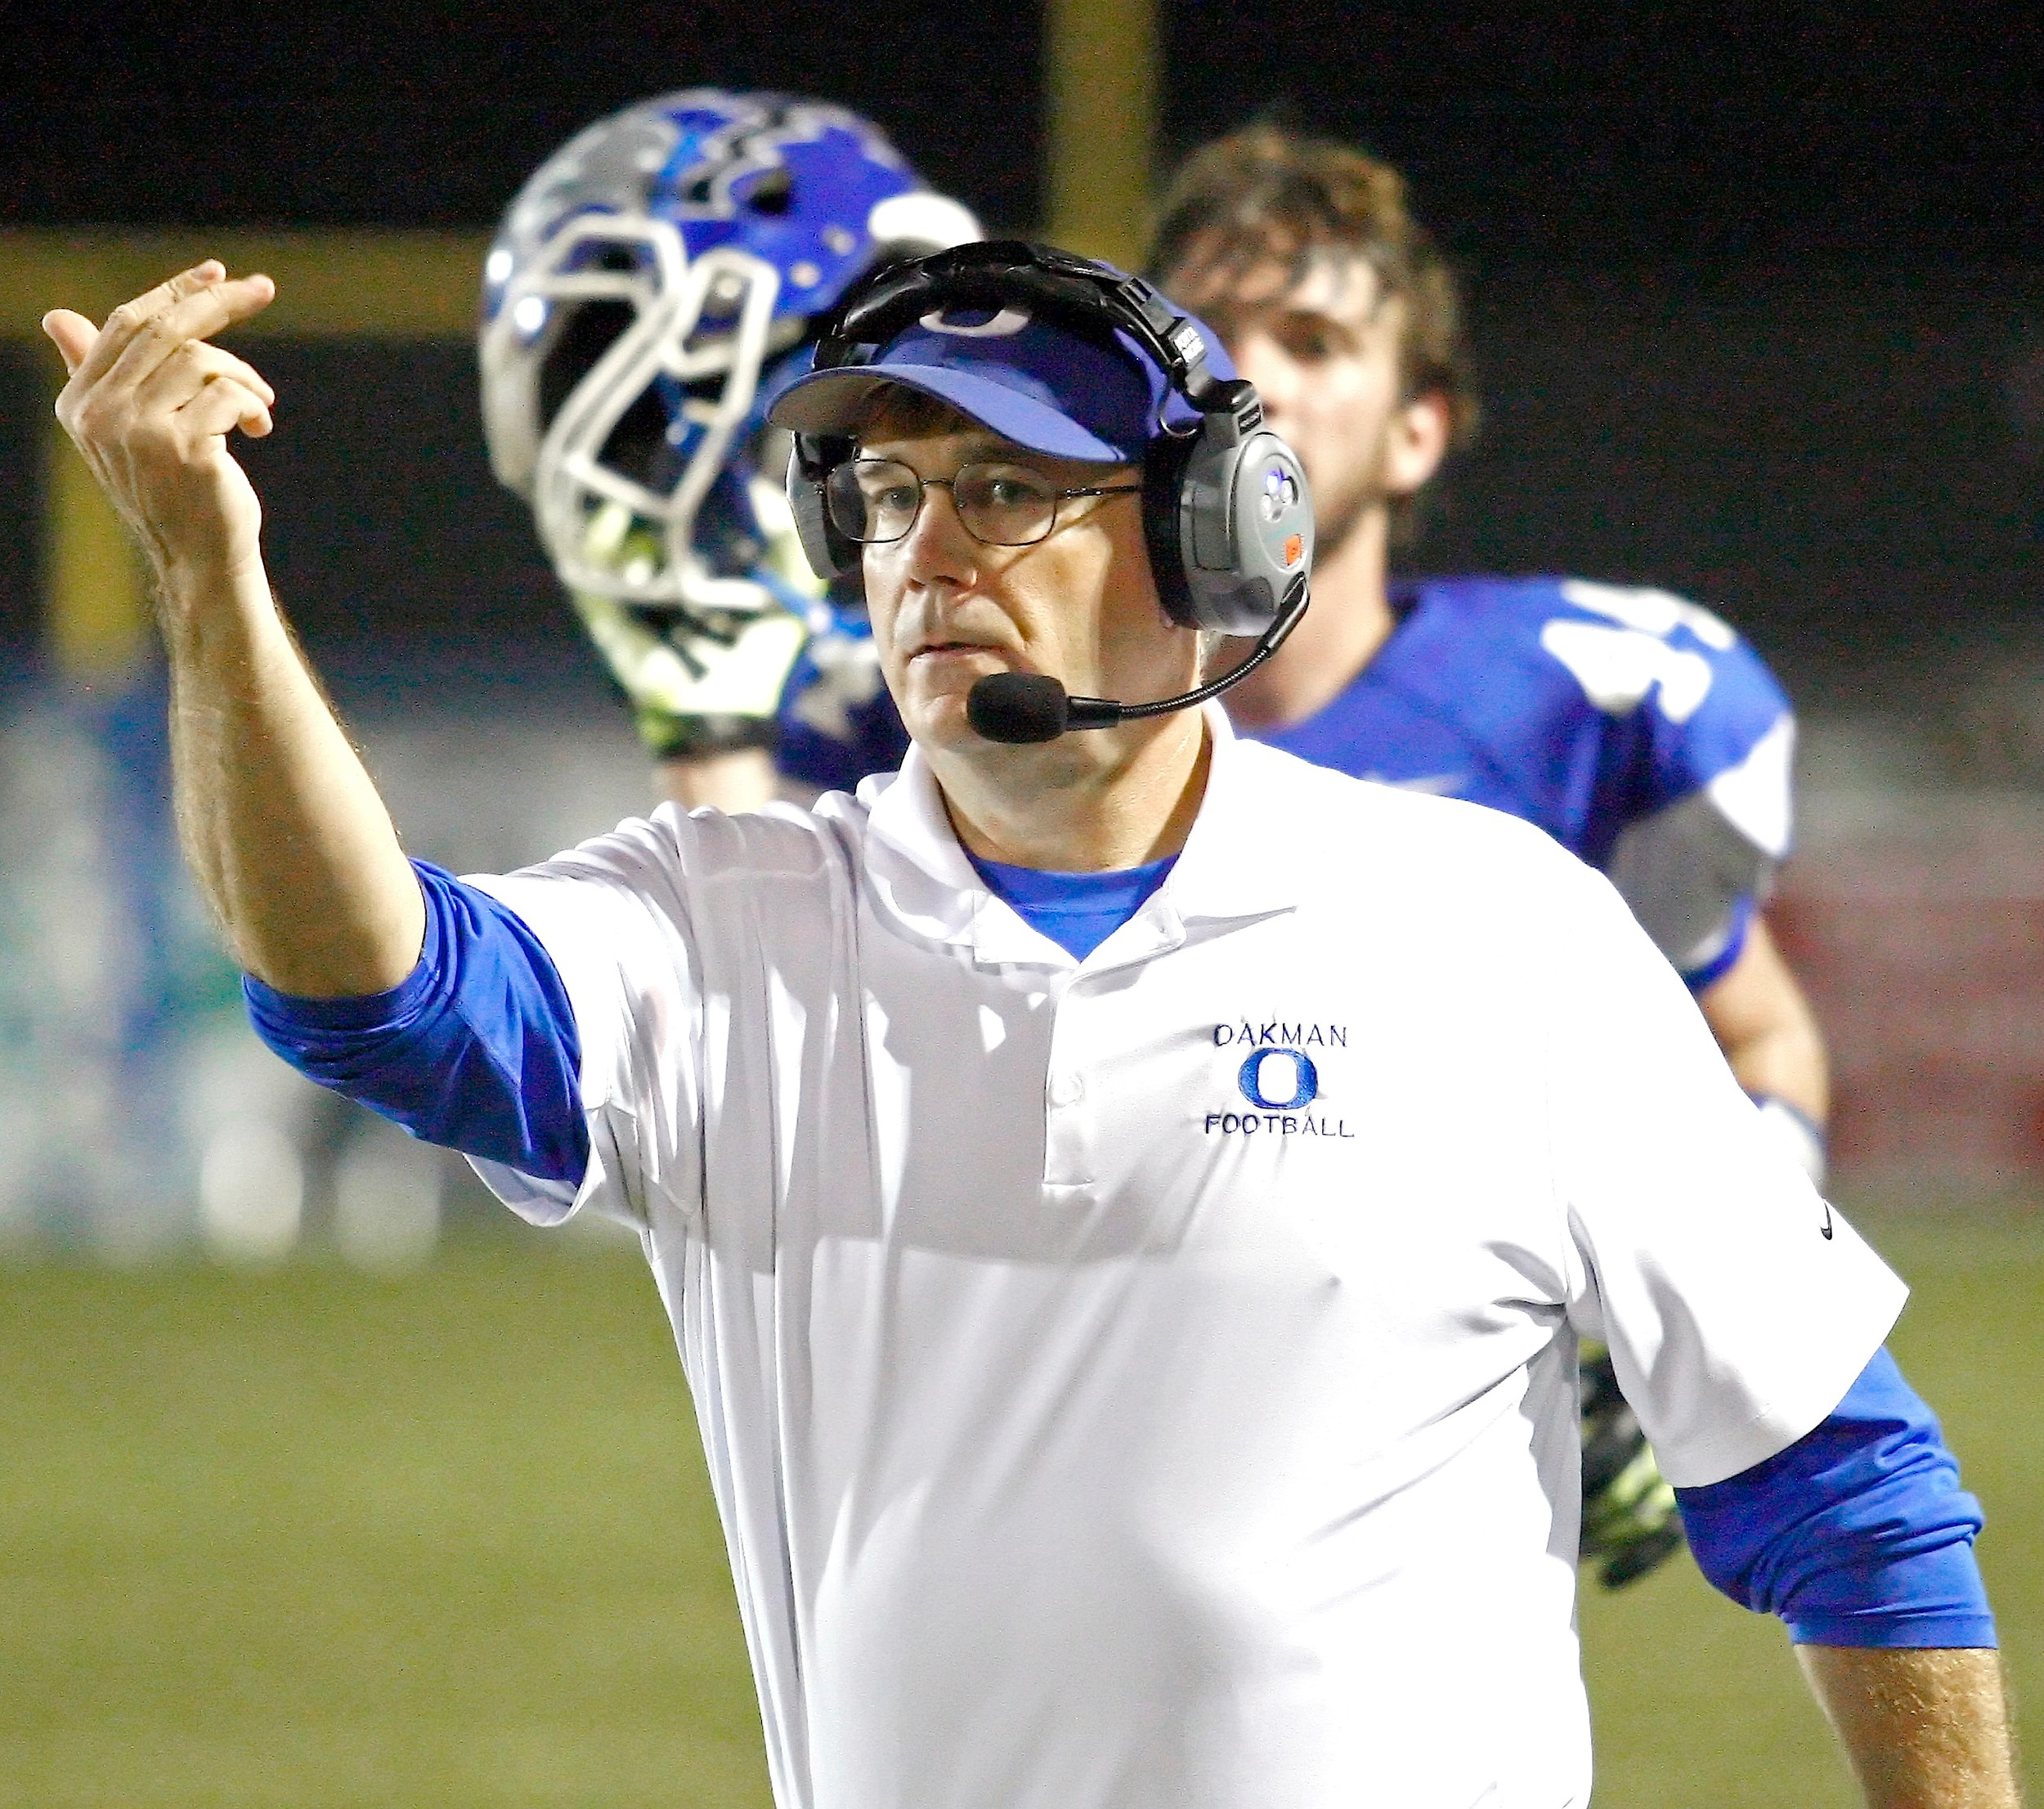 Oakman coach Mark Hastings guided the Wildcats to the Class 3A state quarterfinals last year. Oakman has averaged 9.2 wins over the last five years.